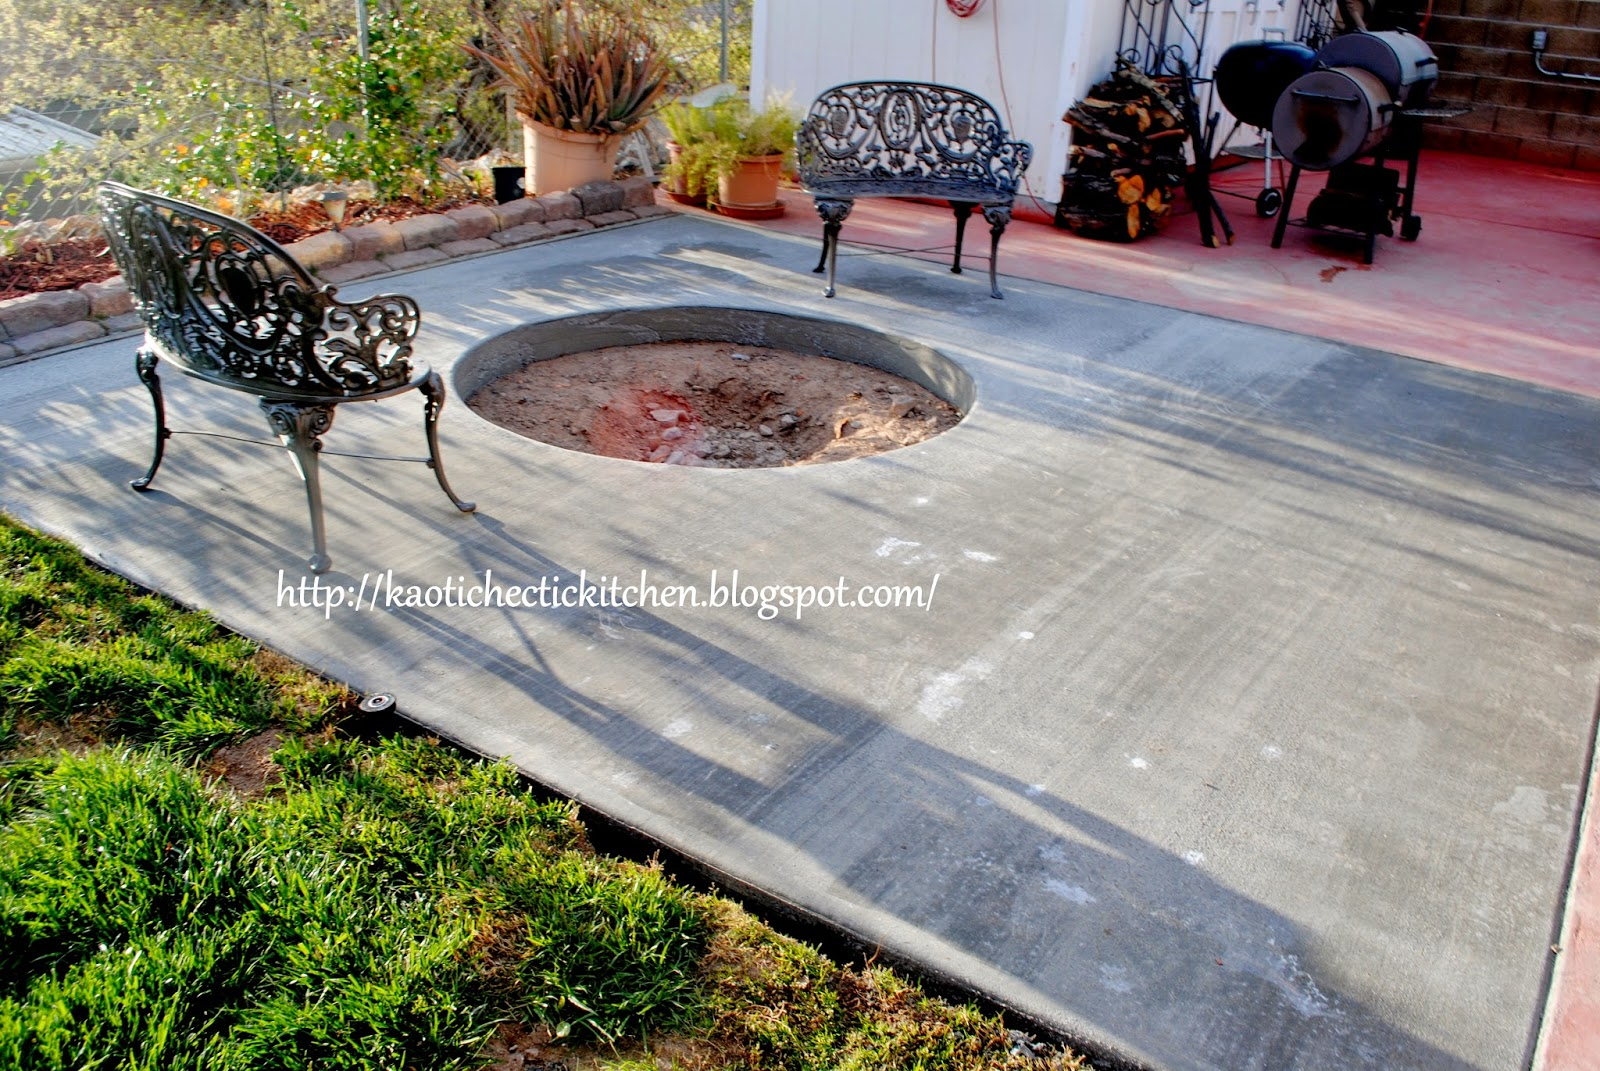 my kaotic kitchen tip trick tuesday diy backyard fire pit